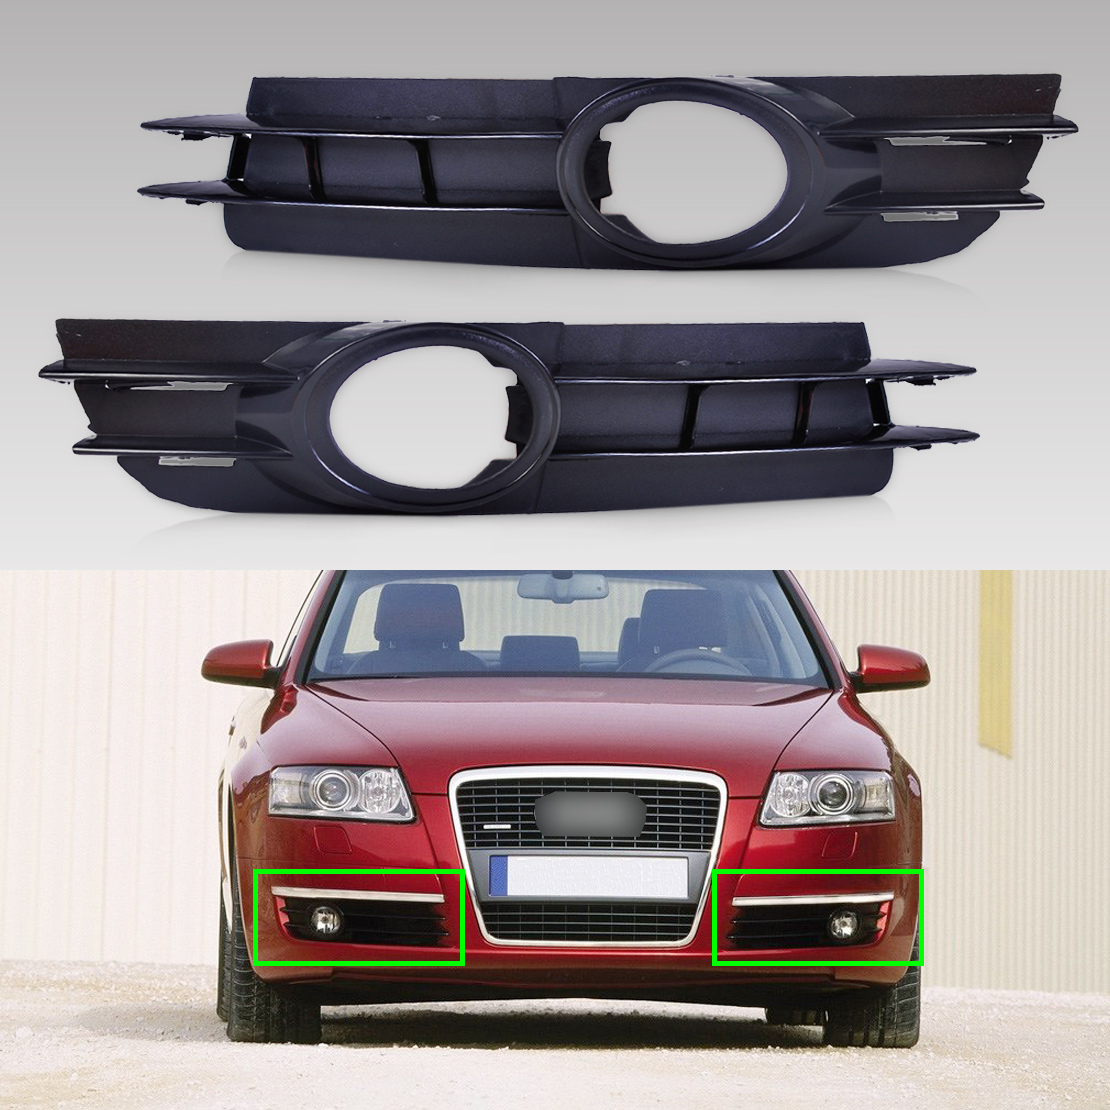 DWCX 4F0807681A / 4F0807682A 2PCS Front Left + Right Fog Light Lamp Grill Grille For Audi A6 / A6 Quattro C6 2005 2006 2007 2008